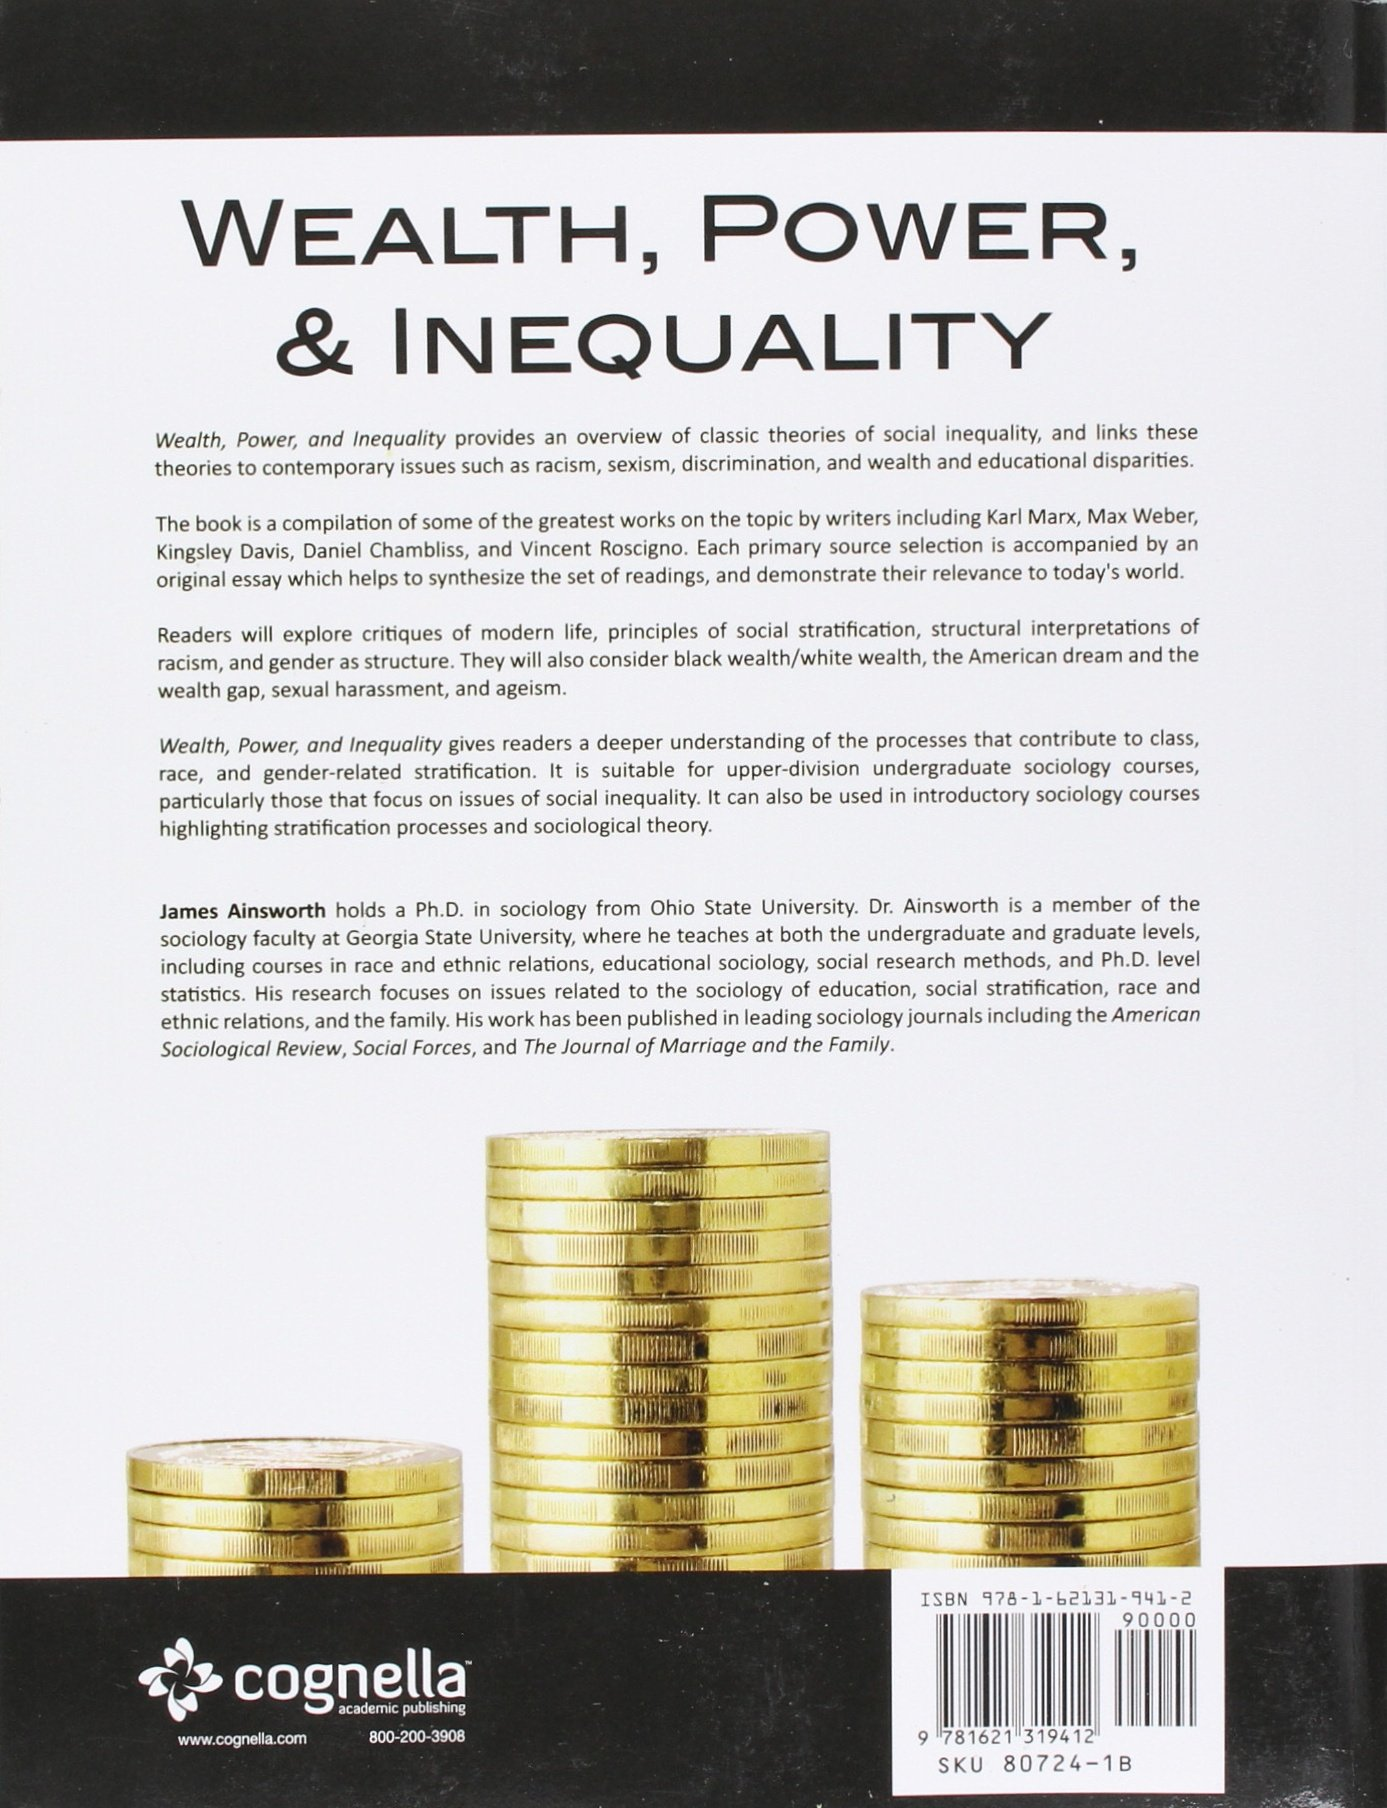 social inequality essay wealth power and inequality james william  wealth power and inequality james william ainsworth wealth power and inequality james william ainsworth 9781621319412 com